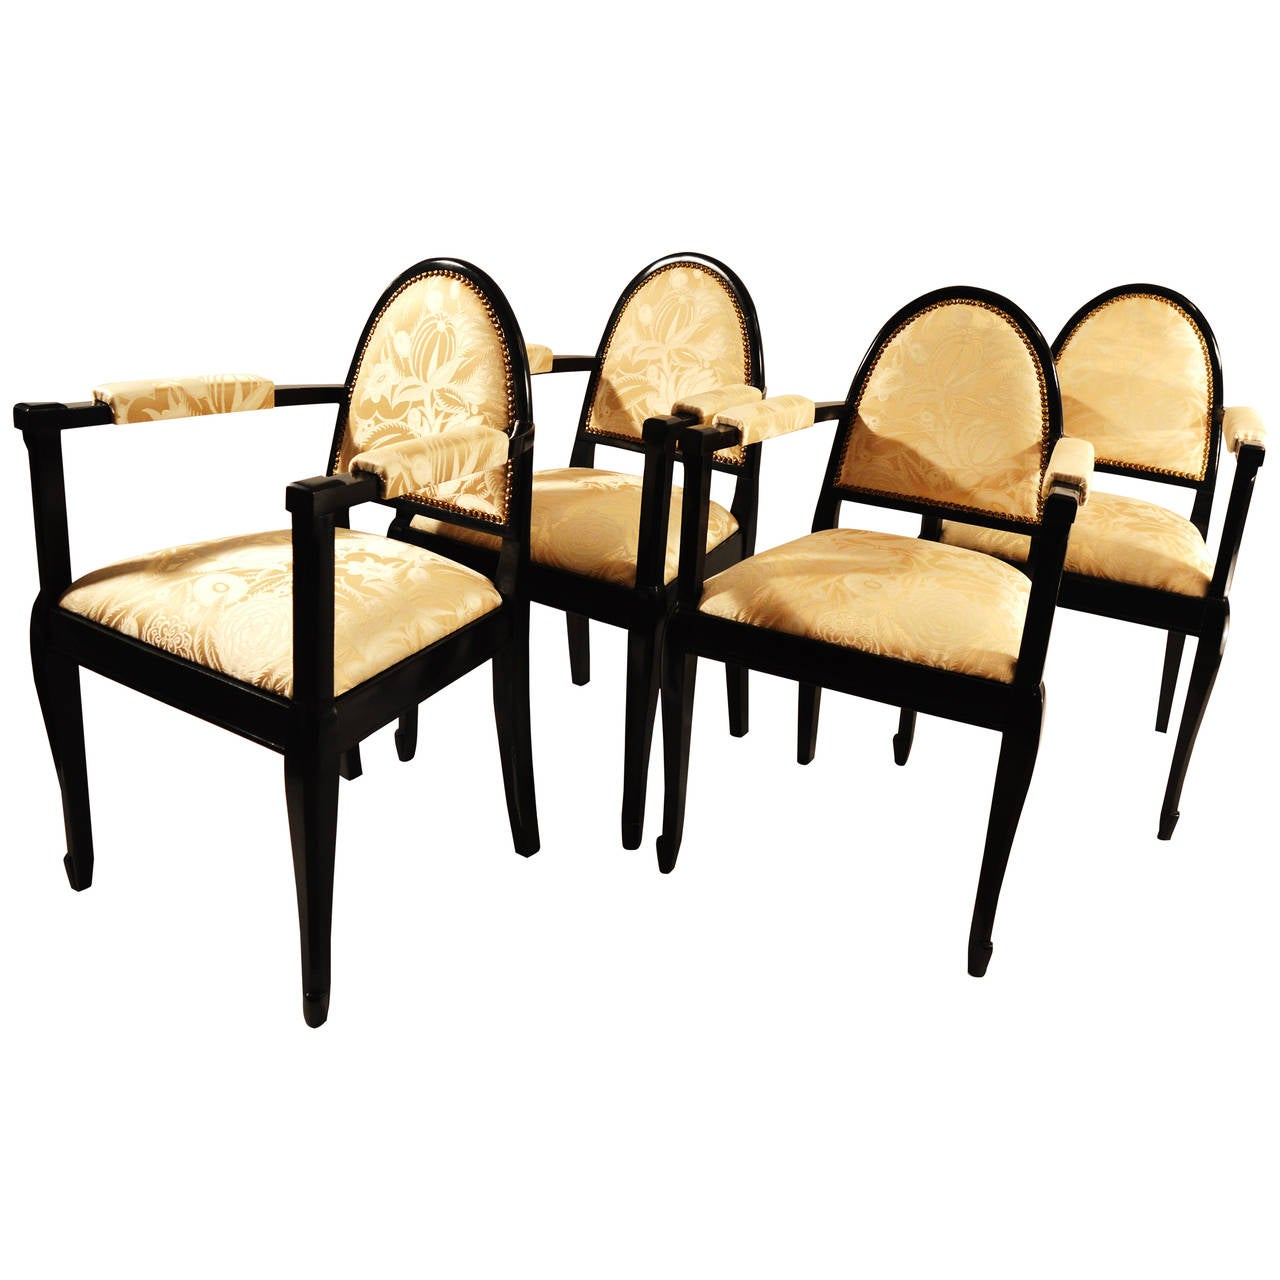 Set of Four Artdeco Armchairs Attributed to Maurice Dufrène